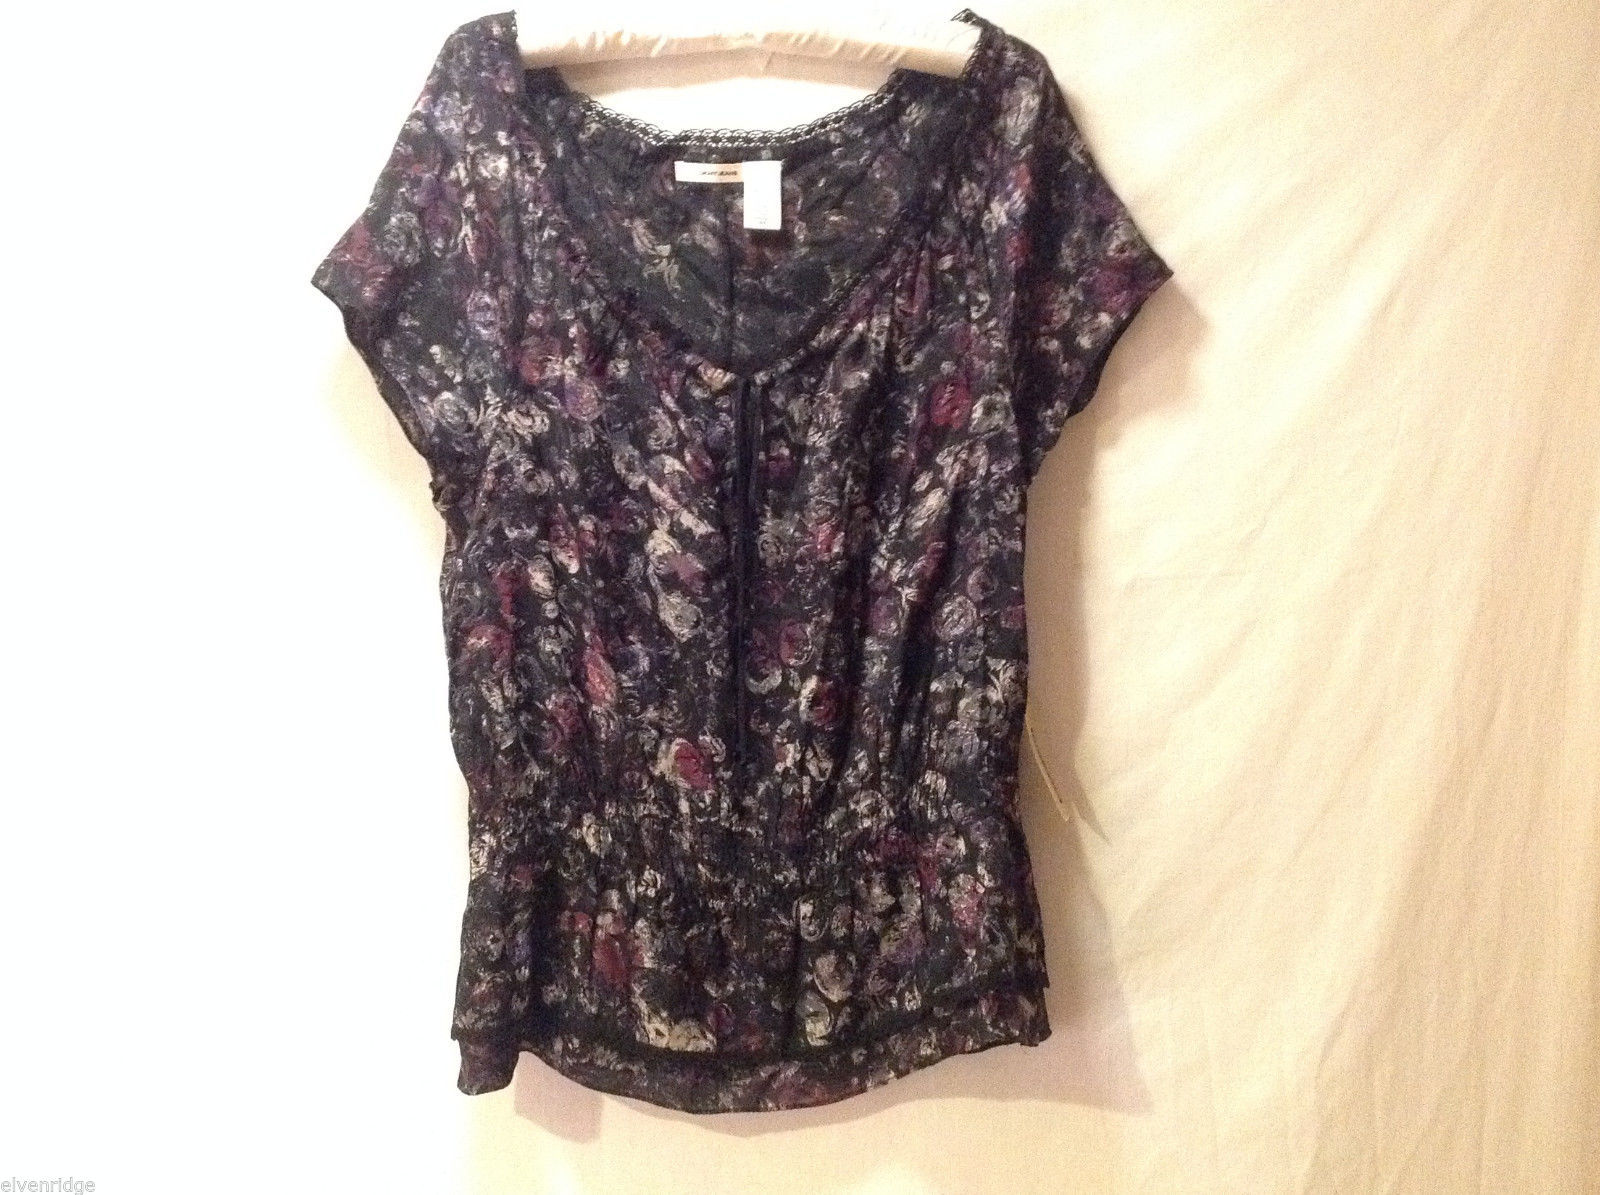 DKNY Jeans Women's Size S Top Shirt Blouse Black w/ Mottled Floral Print NWT